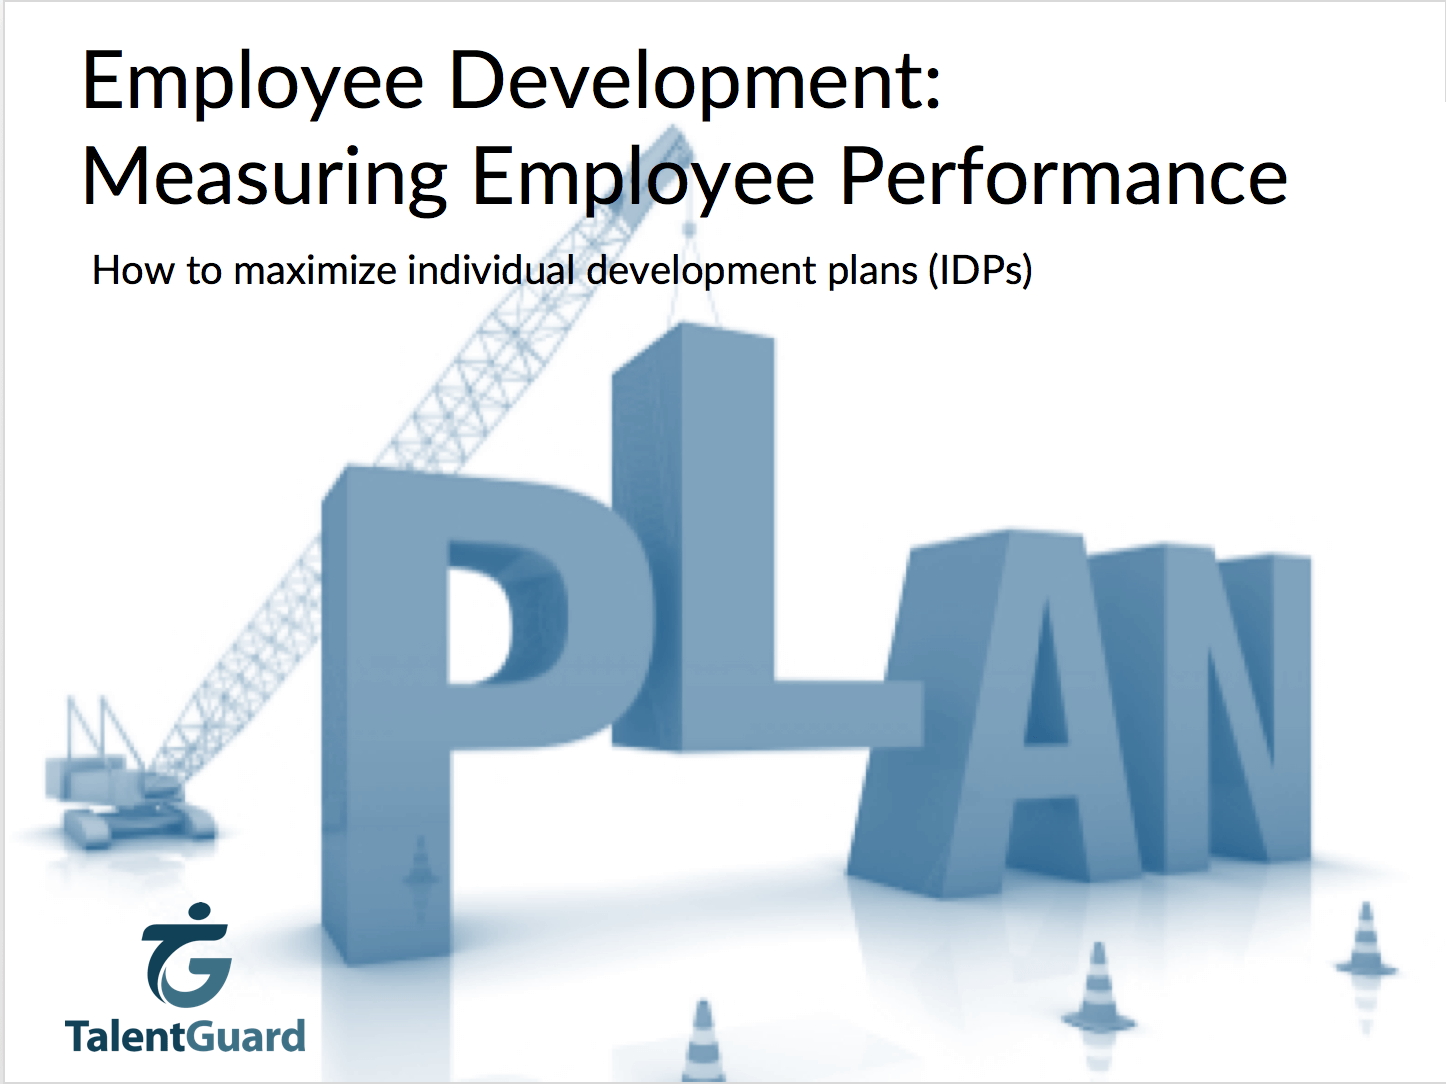 Employee Development With Performance Management TalentGuard